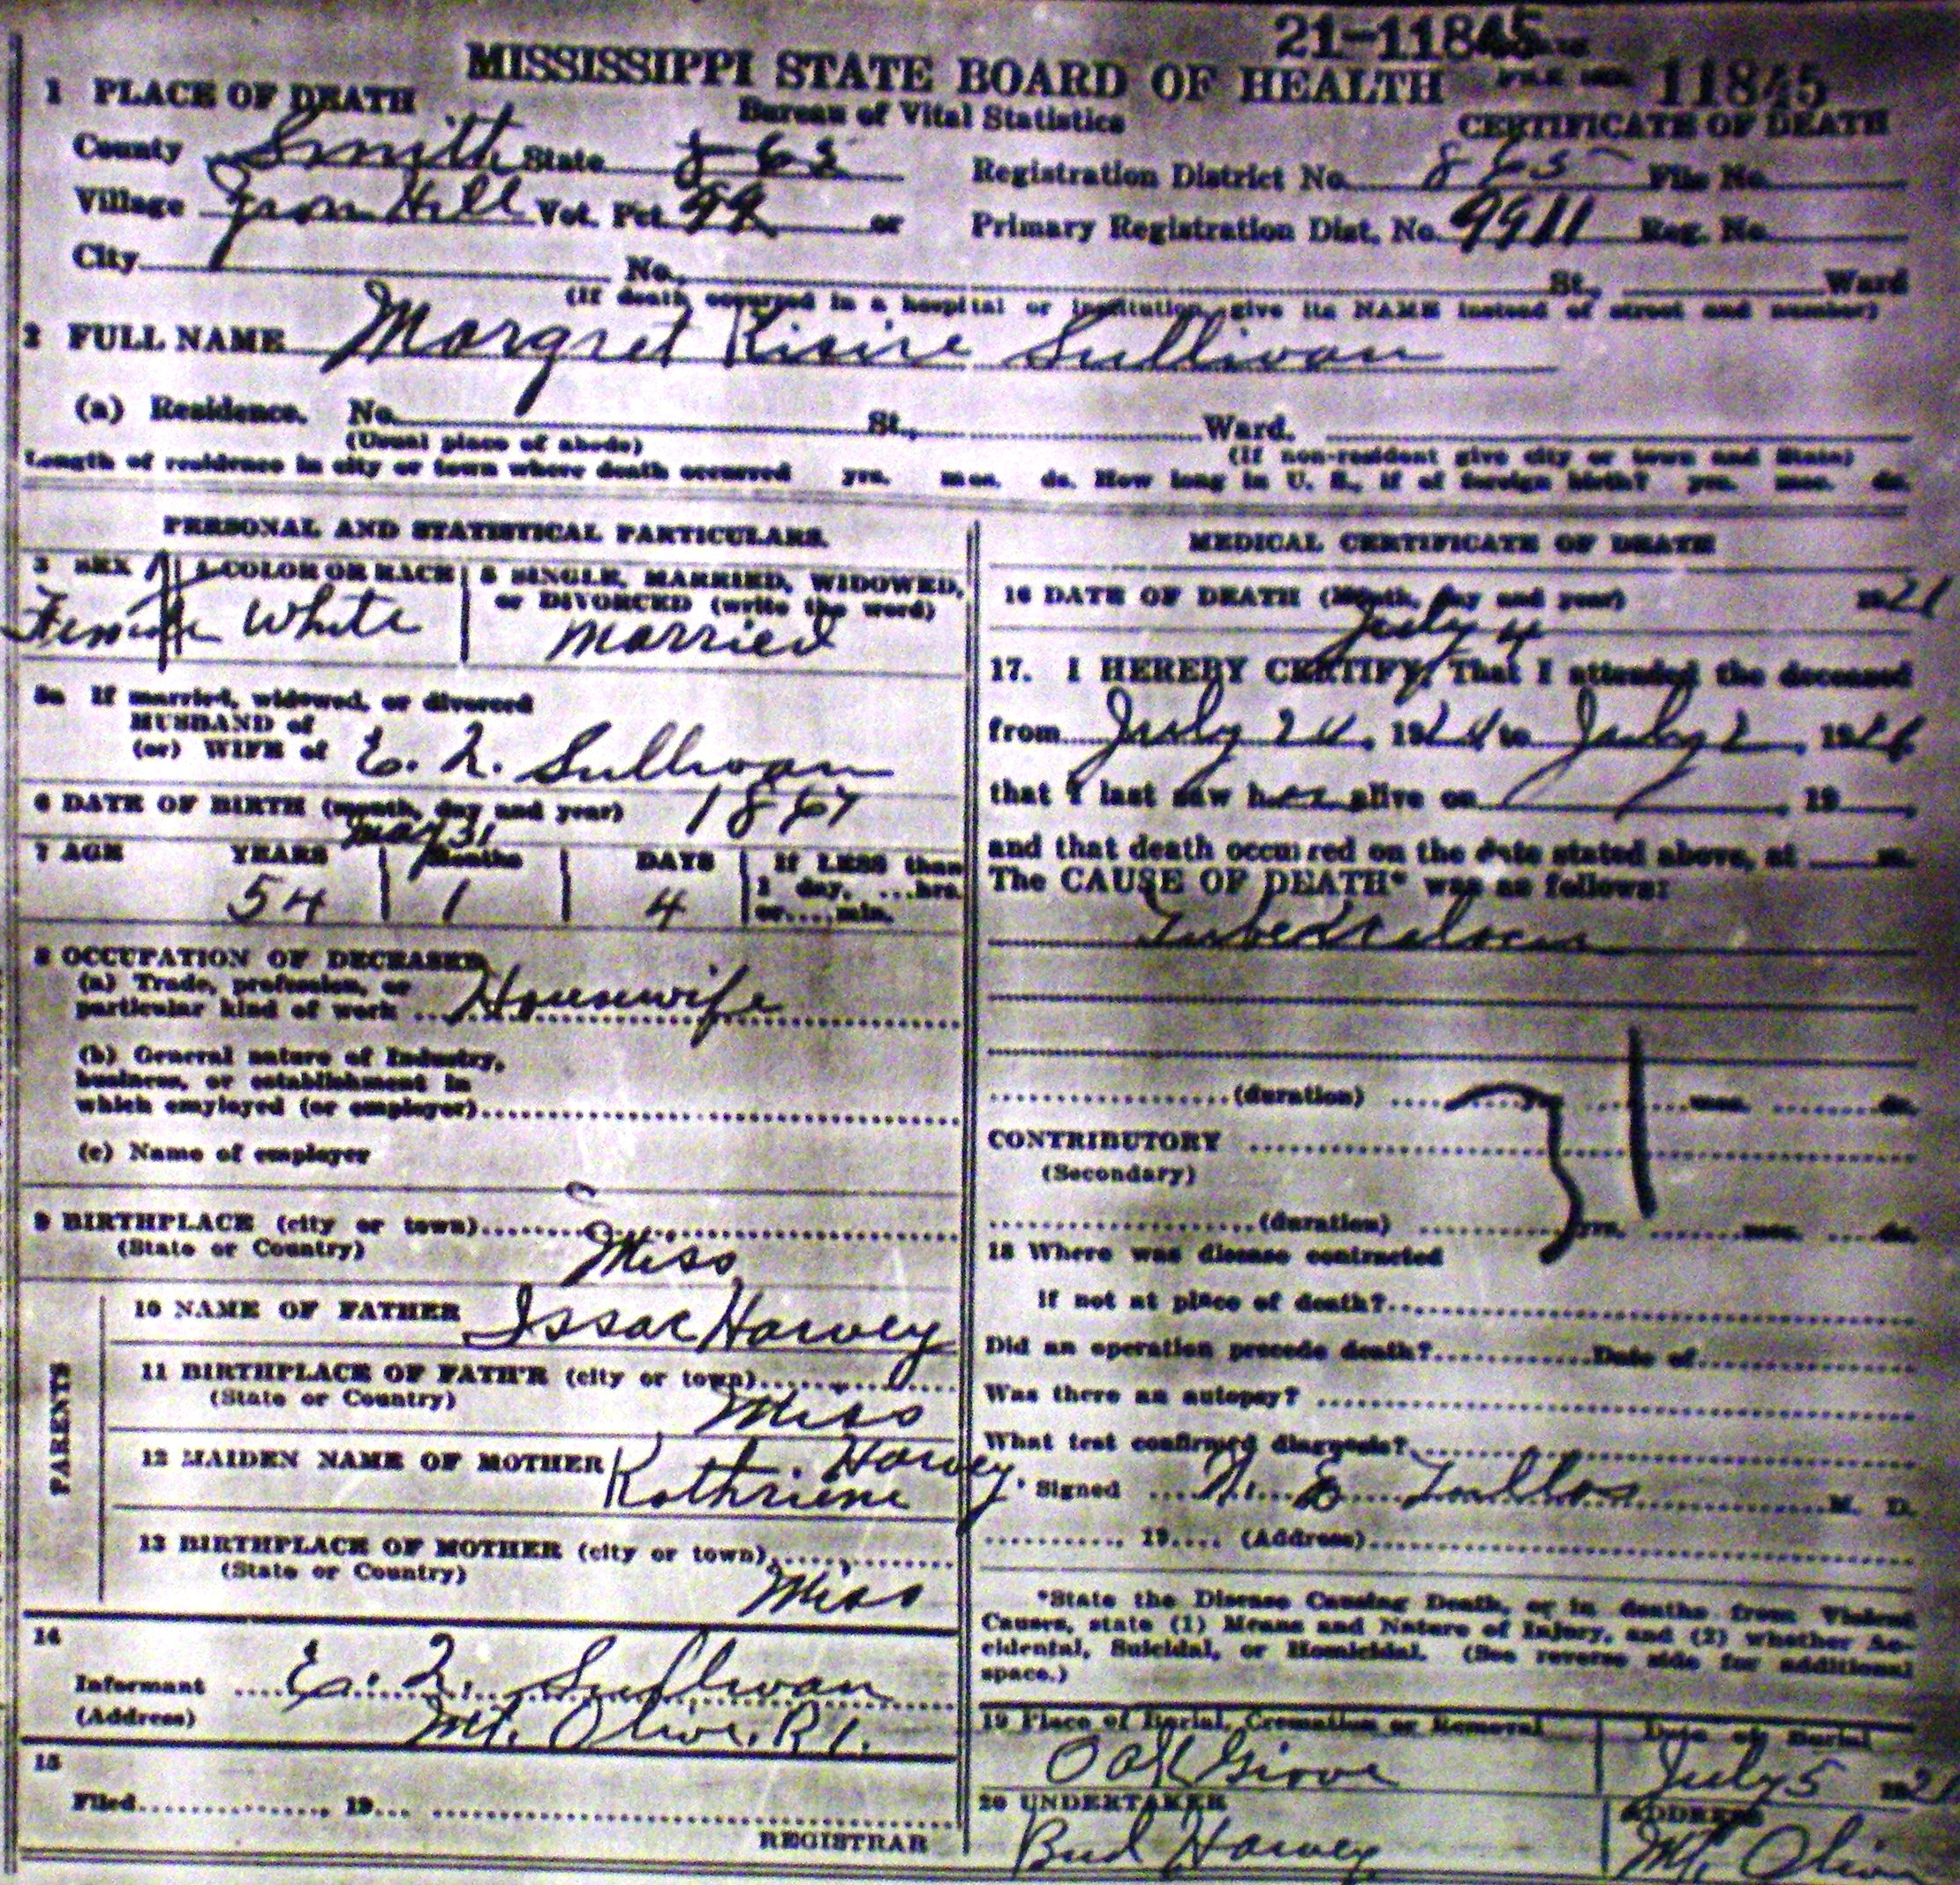 Margaret harvey sullivan death certificate original digital image 2220 x 2135 pixels xflitez Images